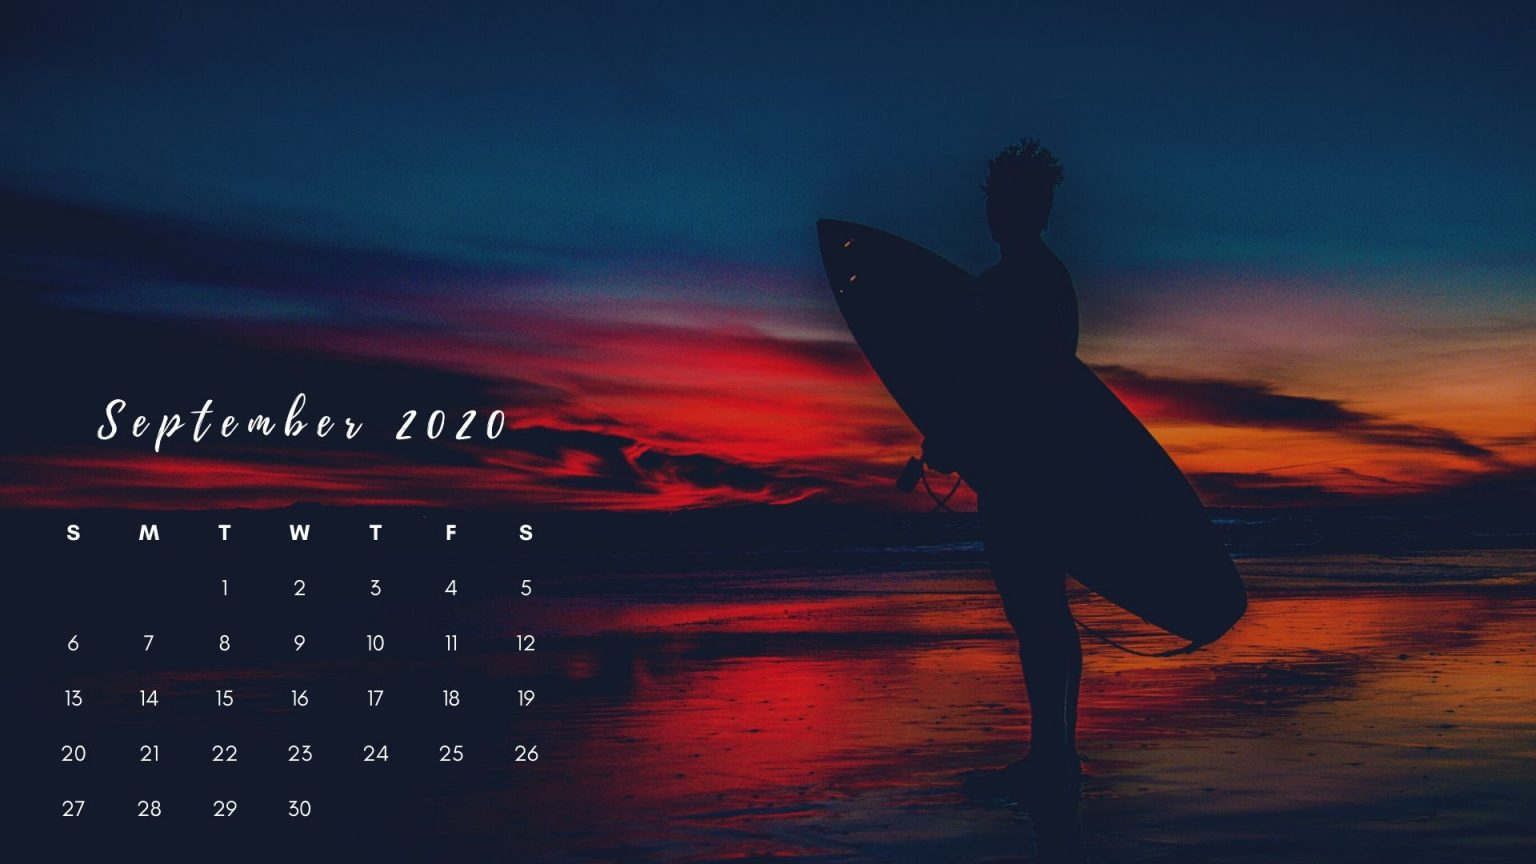 Free September 2020 Calendar Wallpaper